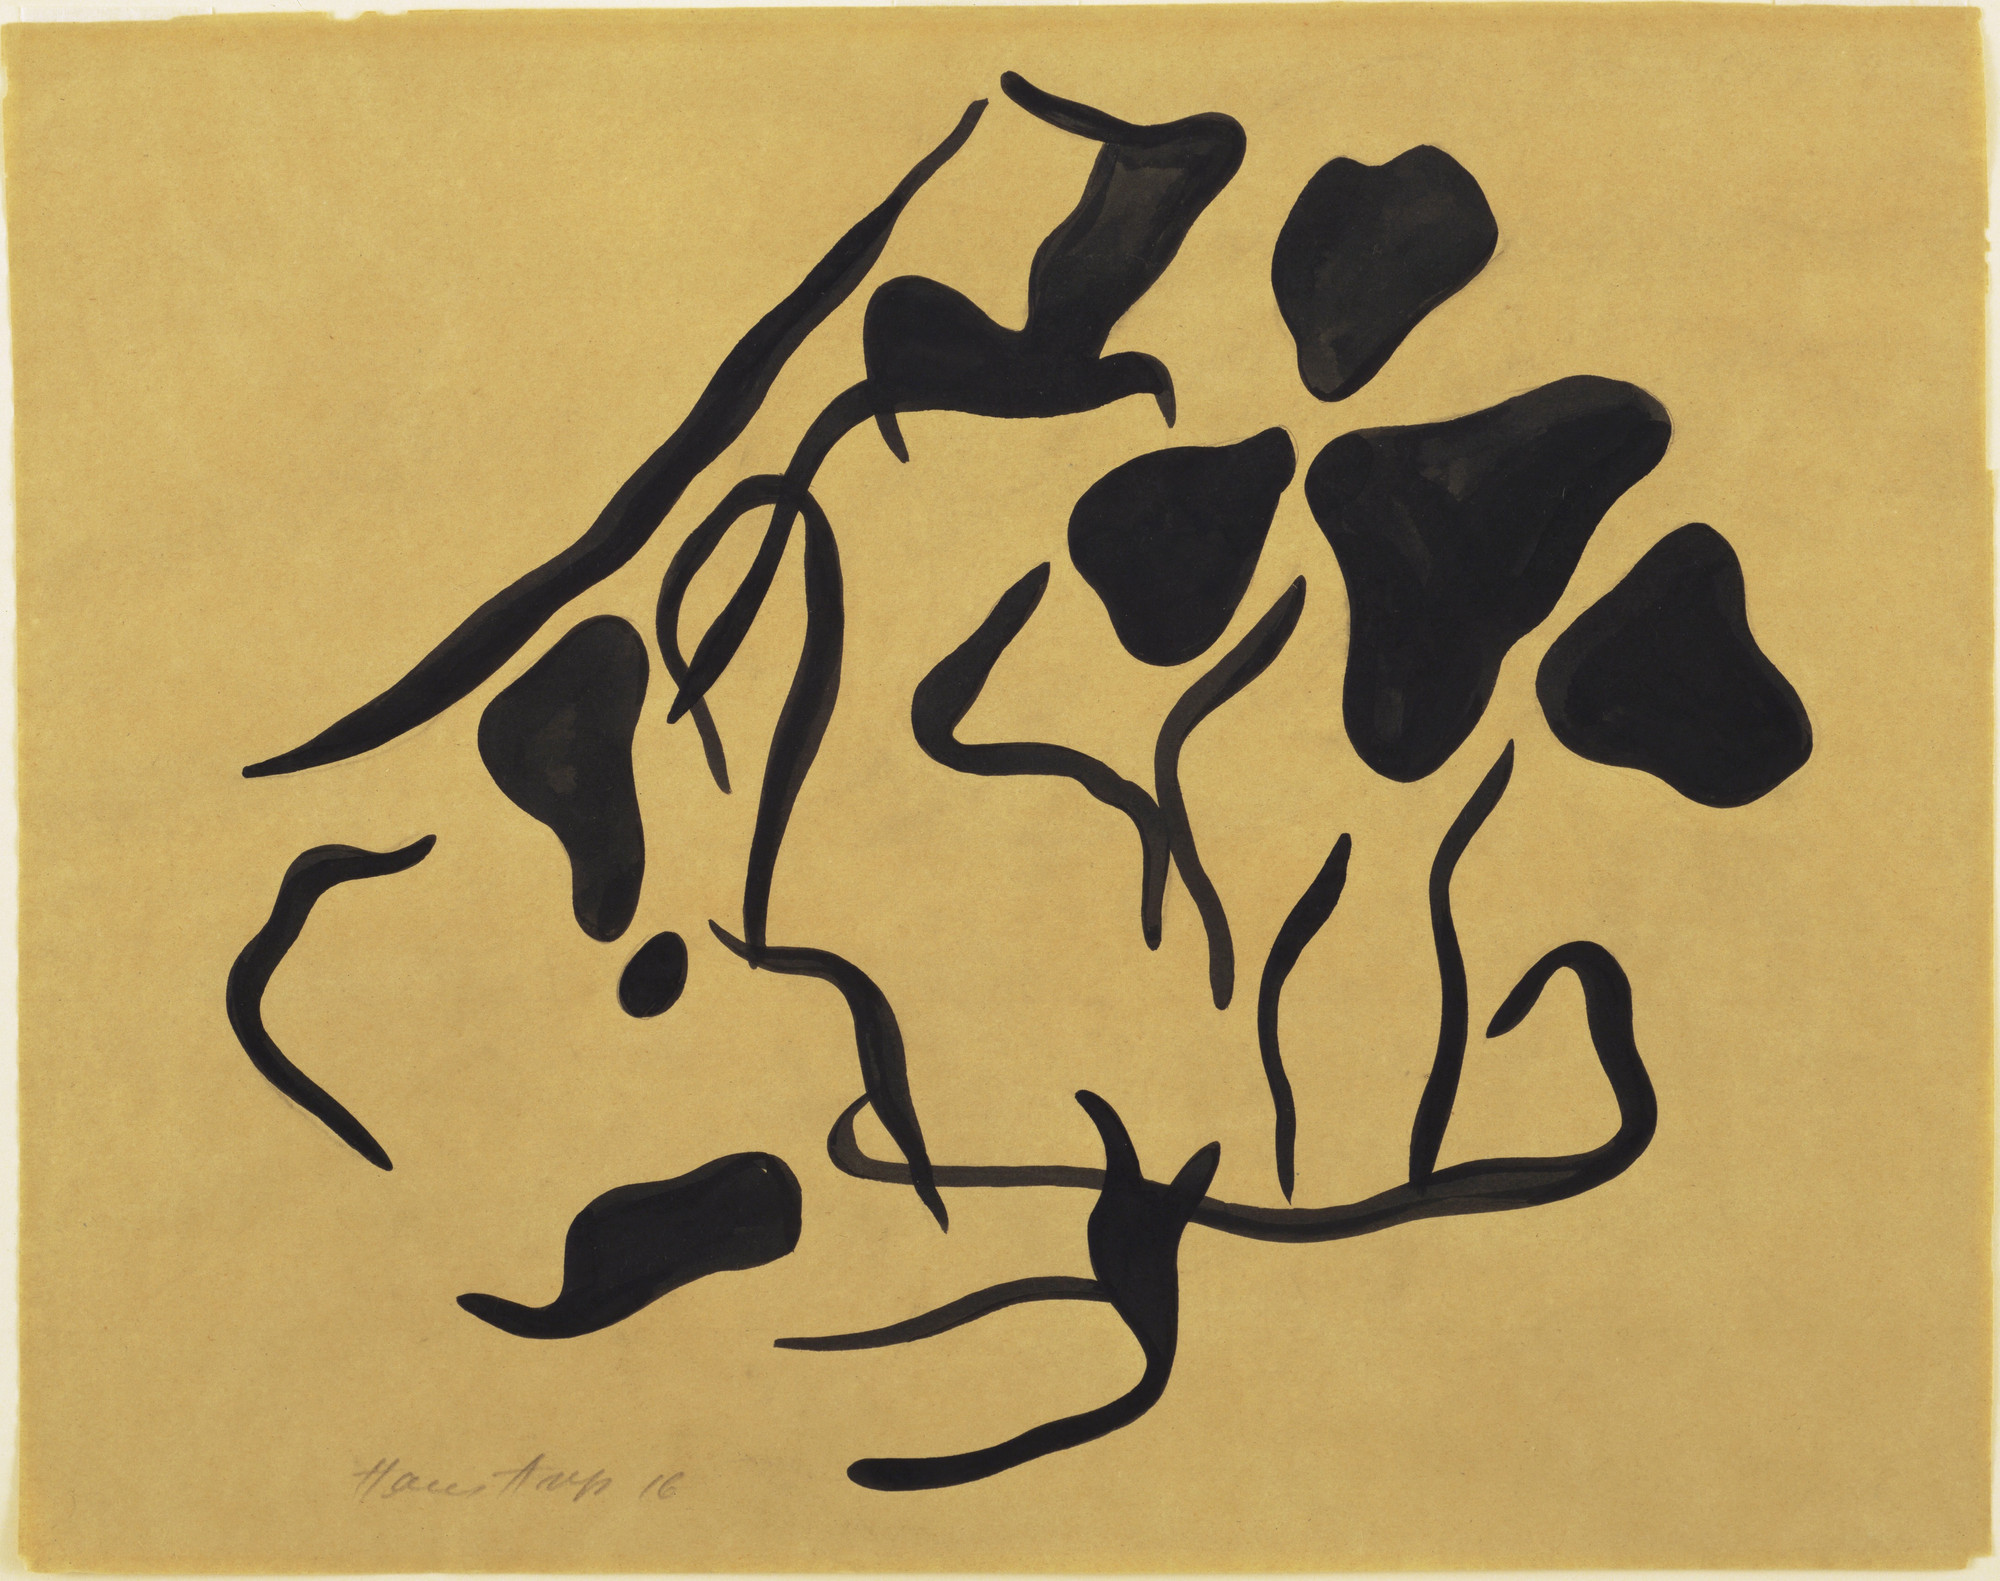 Jean (Hans) Arp. Untitled (Automatic Drawing). 1917–18 (inscribed 1916)